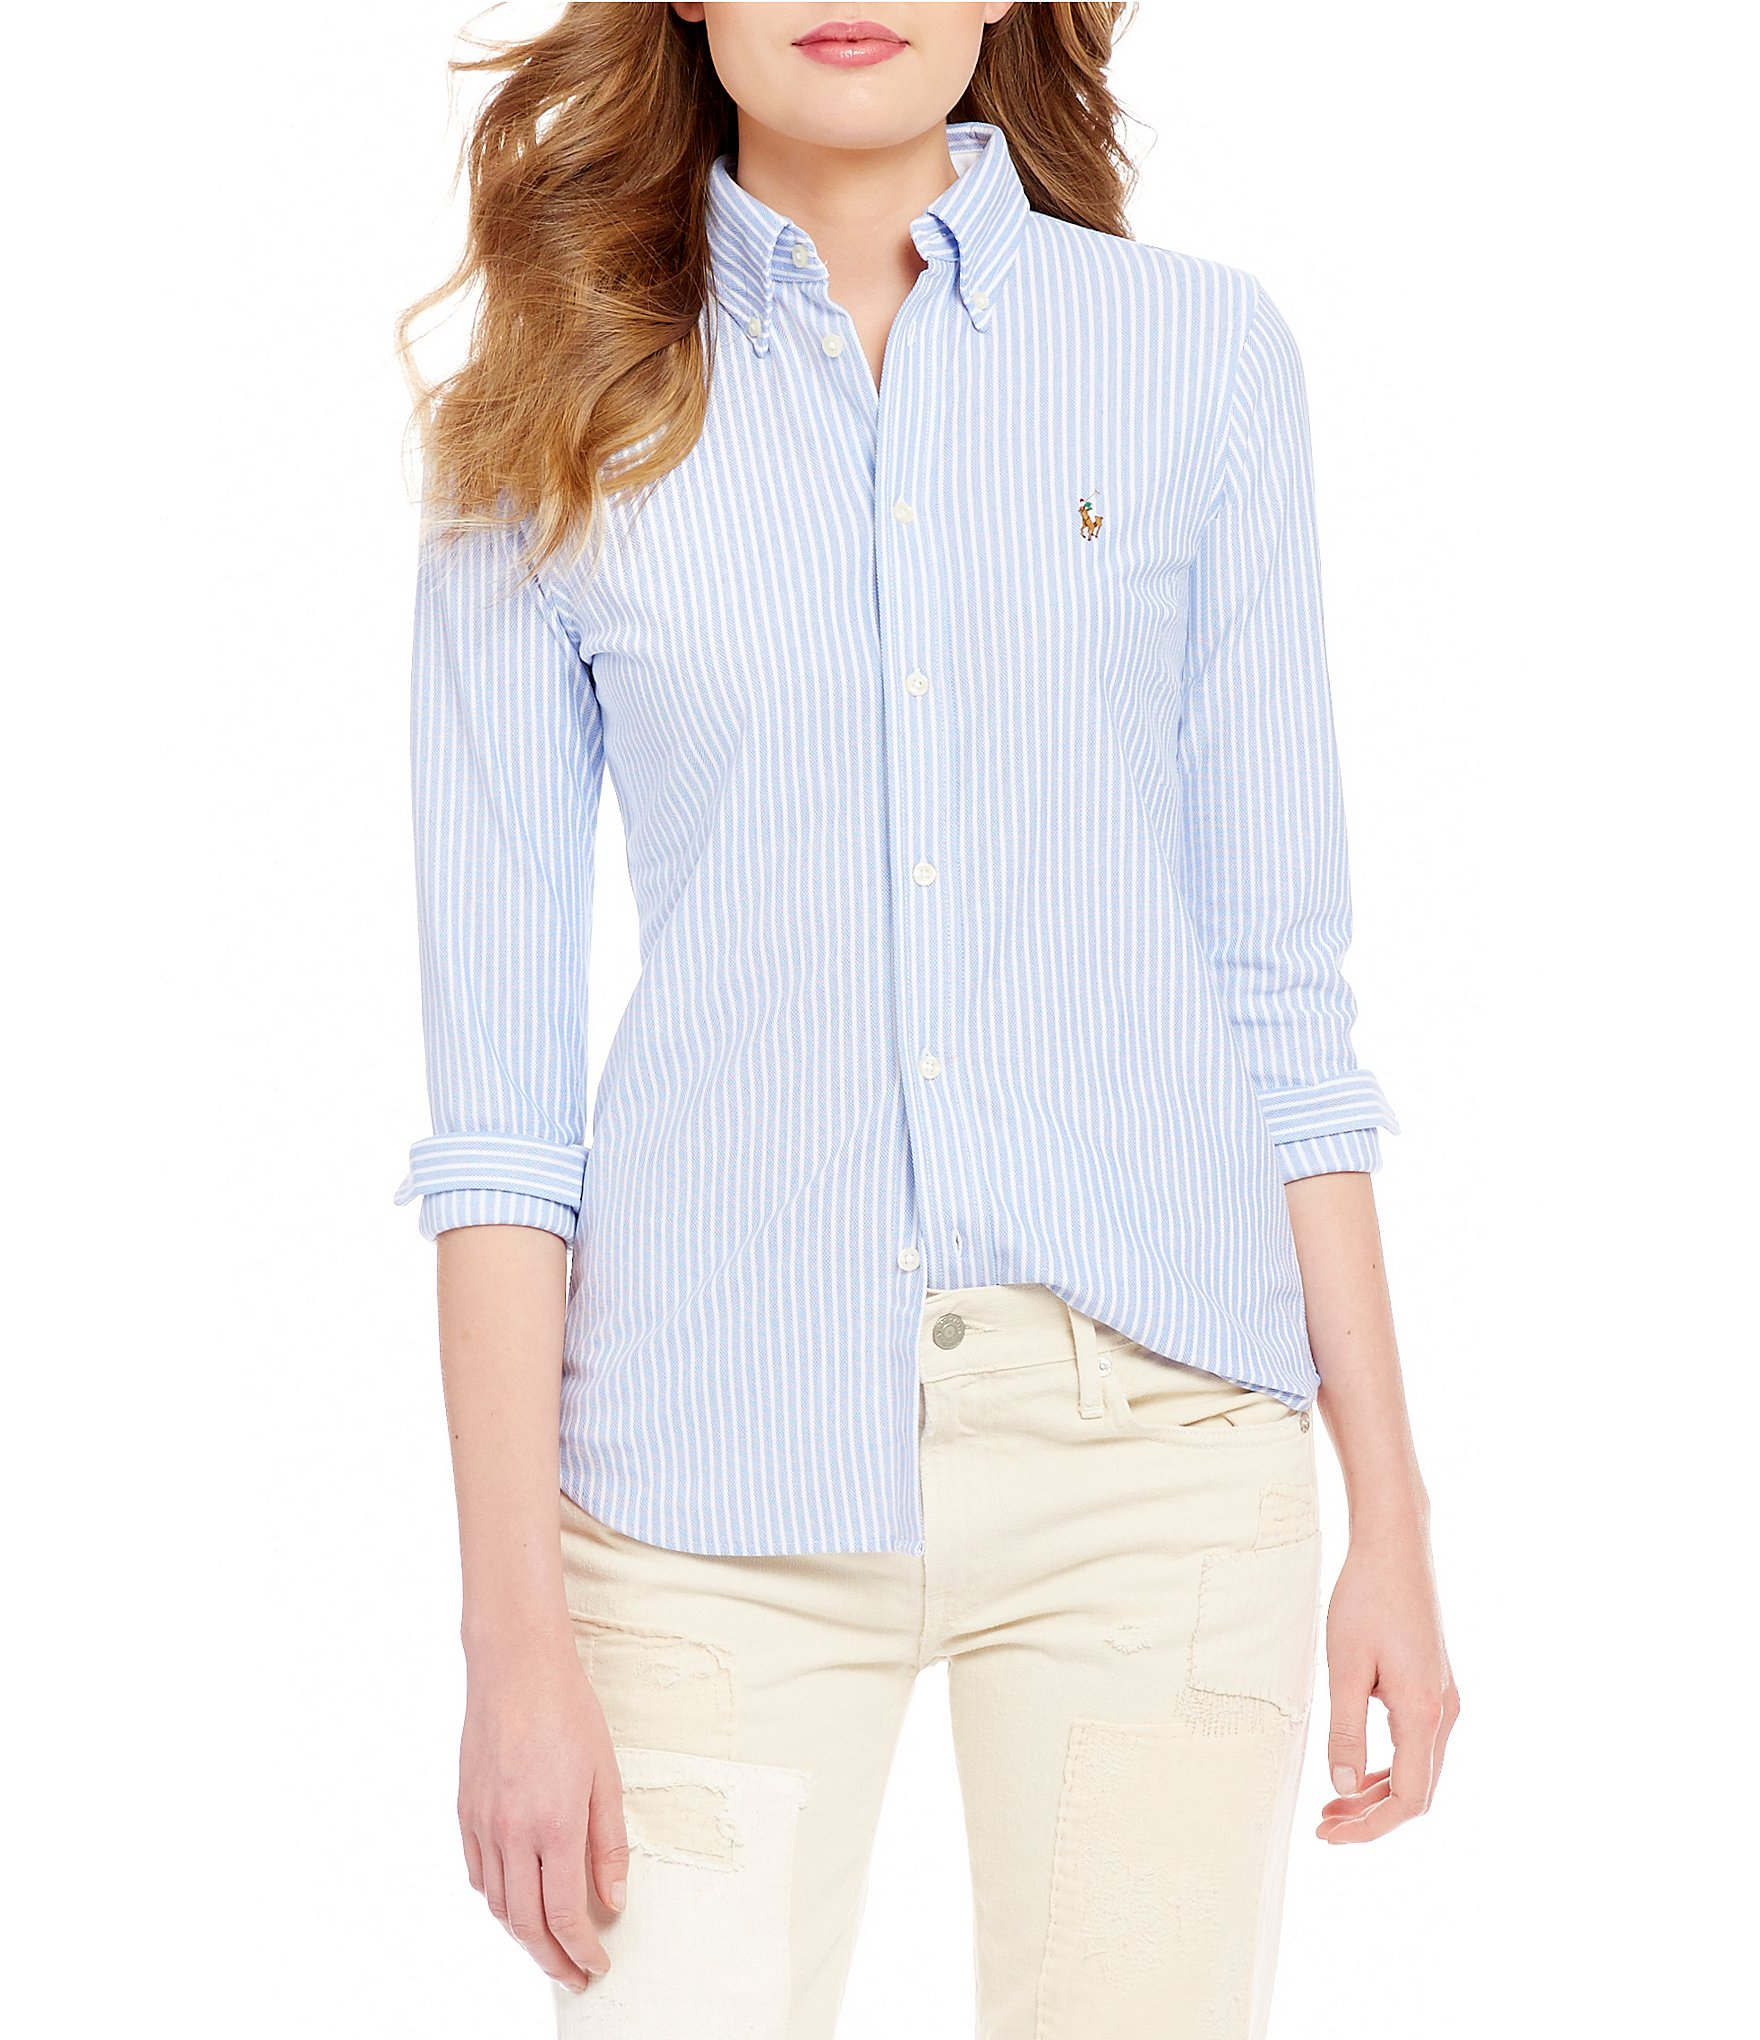 Polo ralph lauren striped knit oxford shirt dillards for Polo ralph lauren striped knit dress shirt